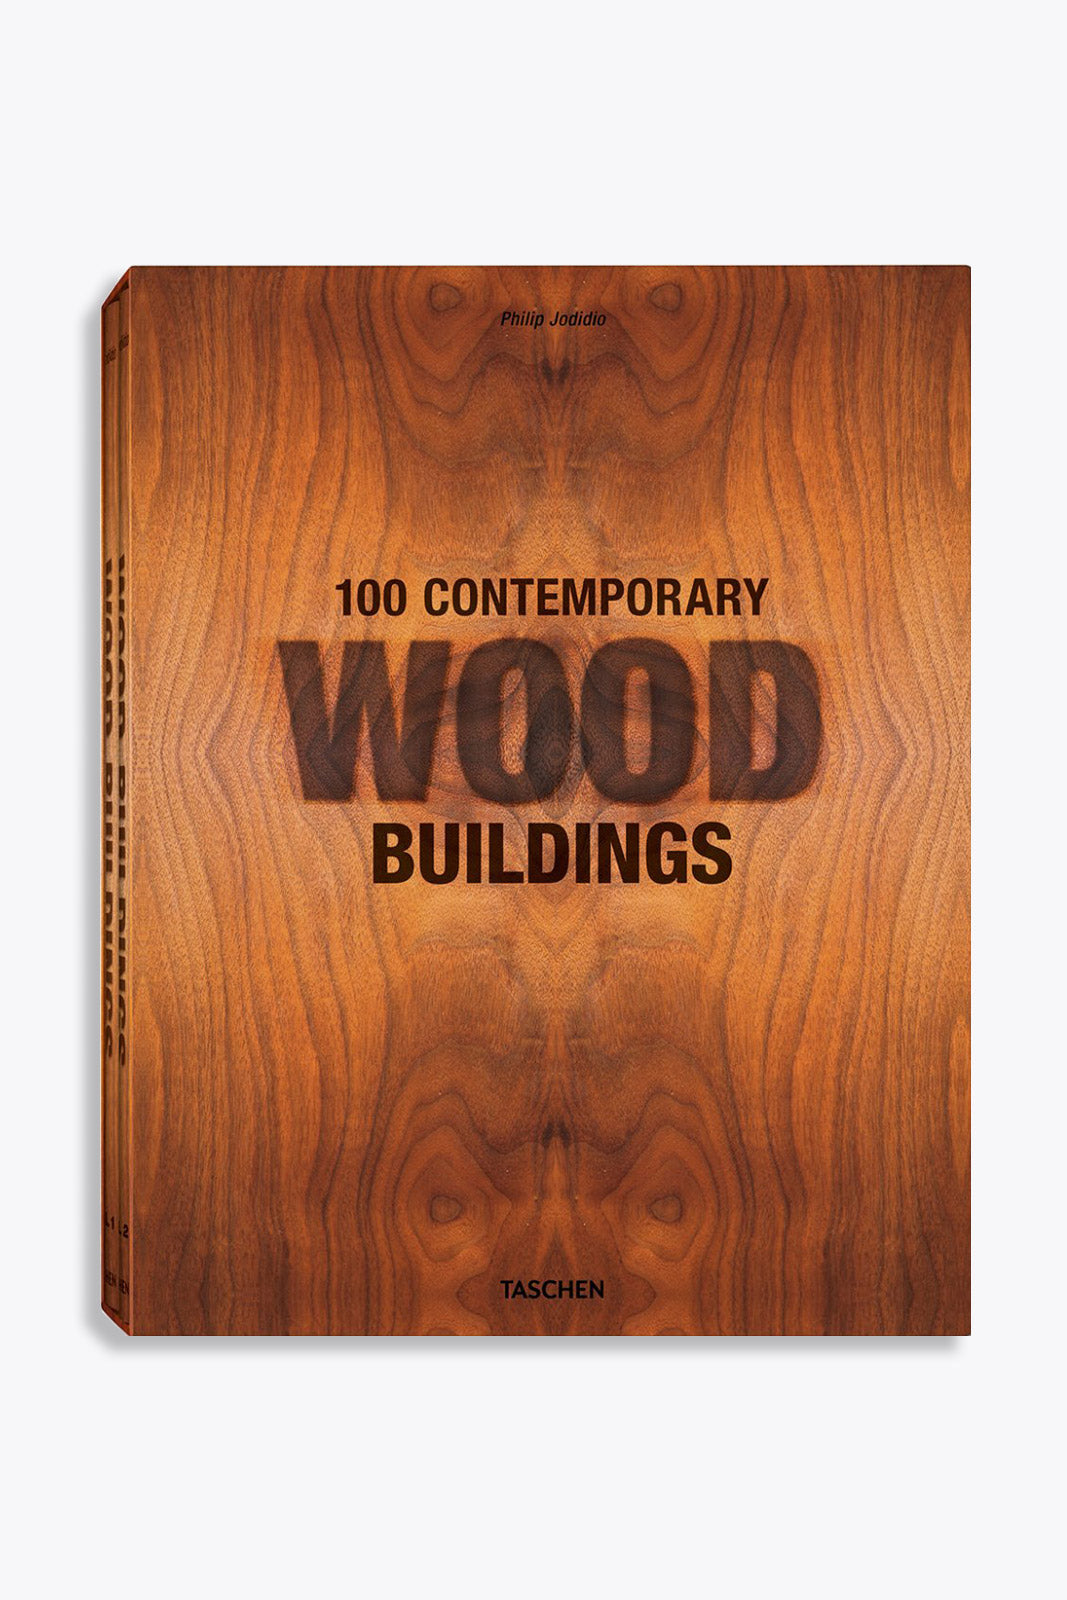 100 Contemporary wood buildings hardcover